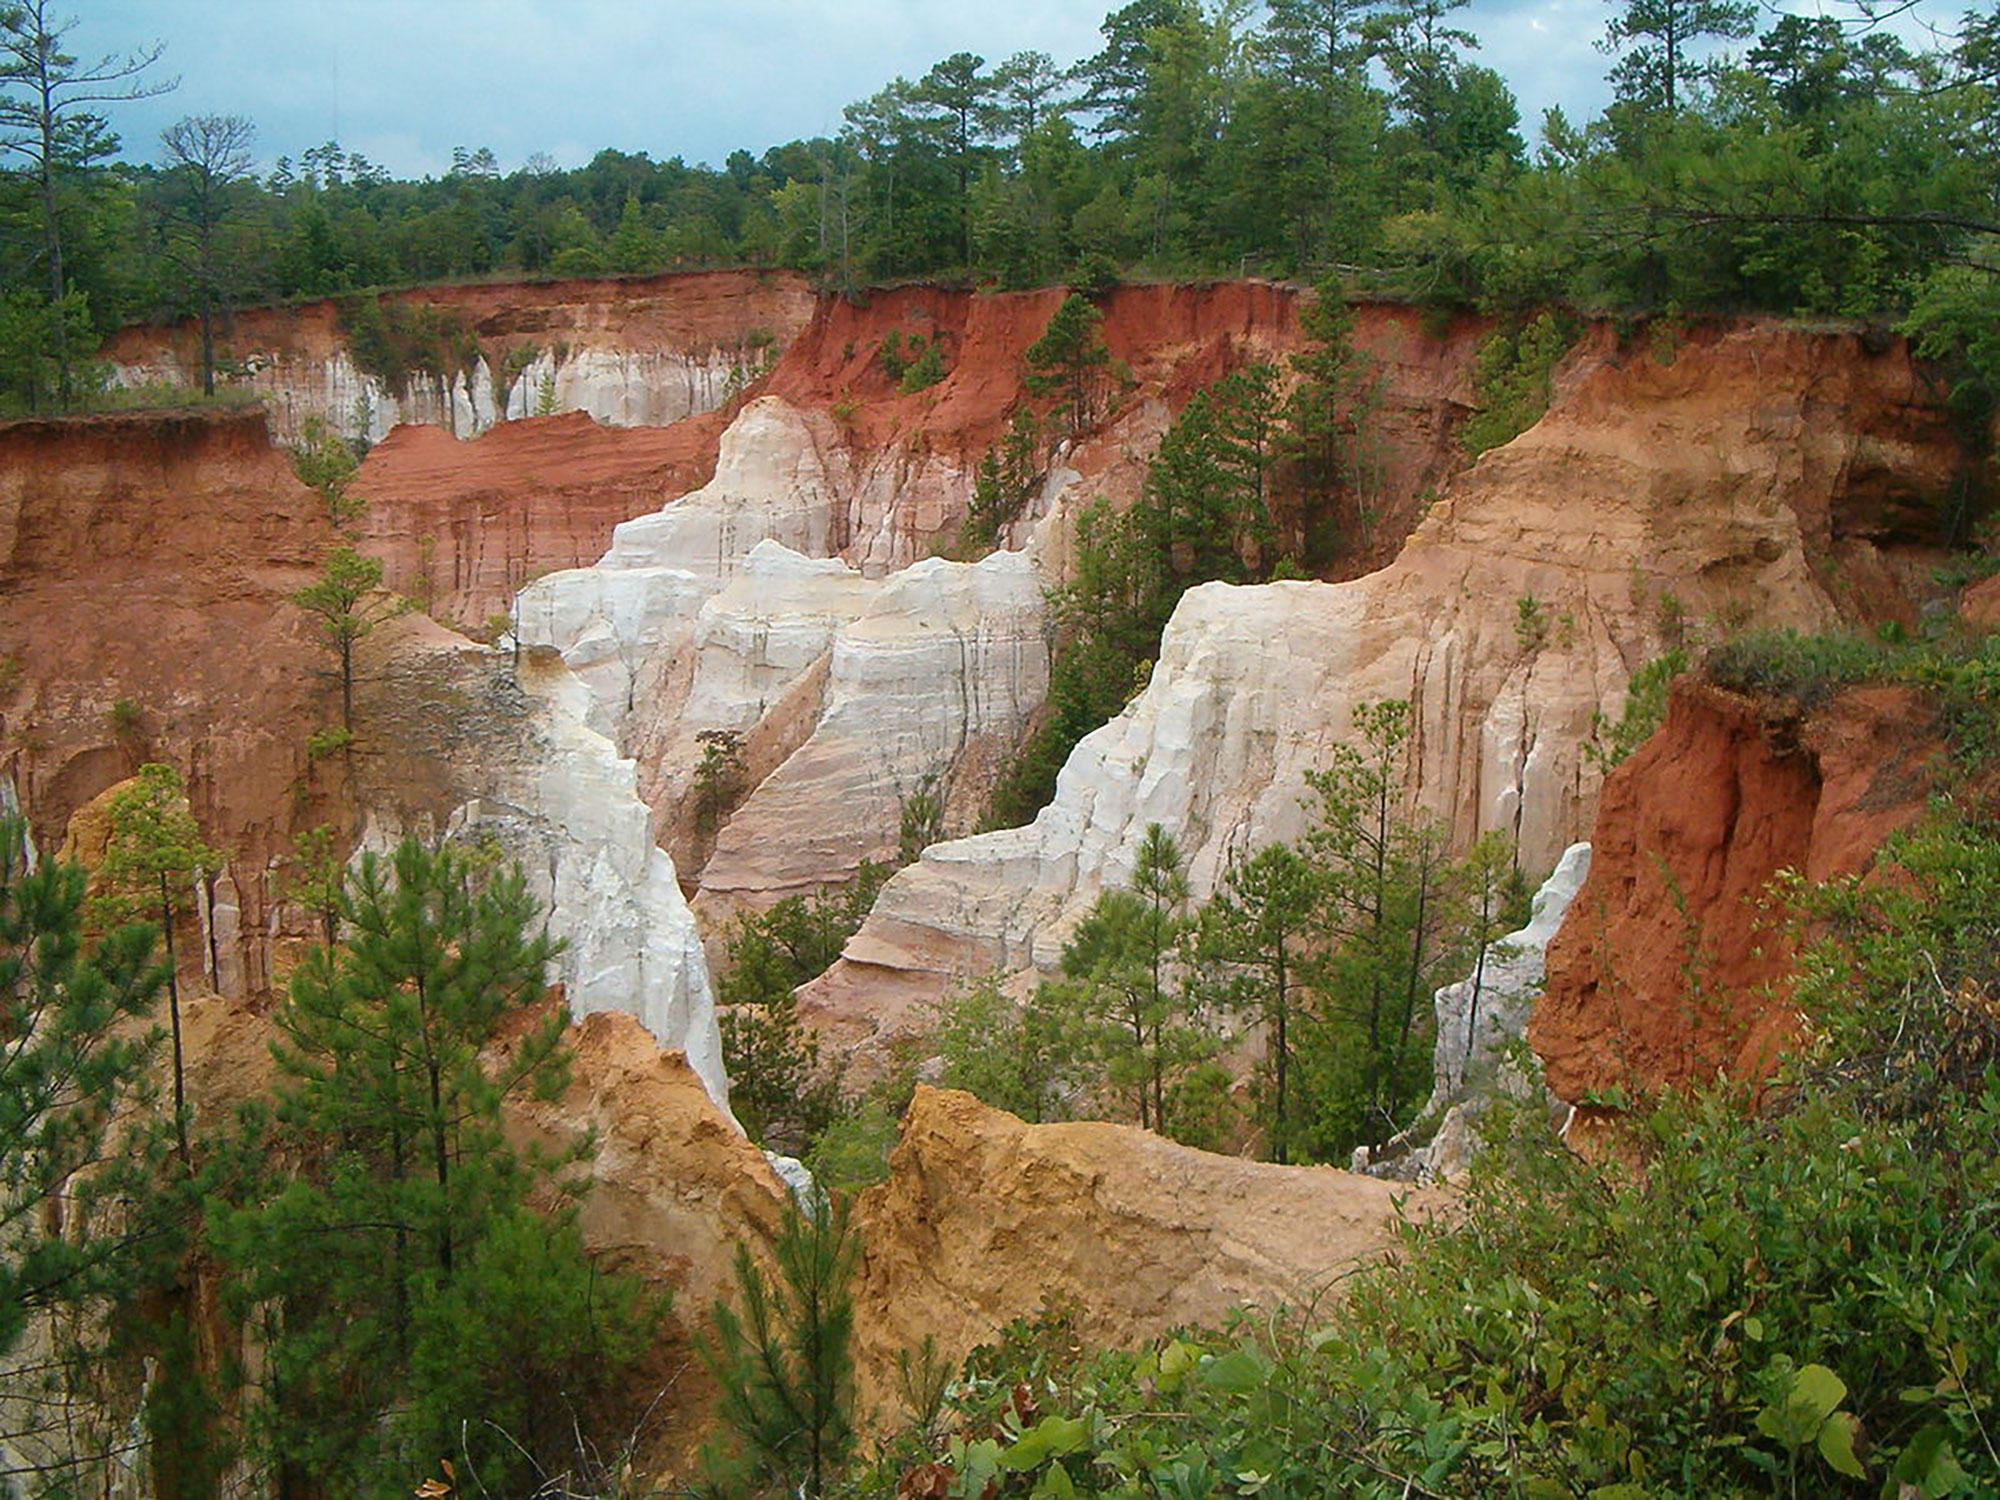 Providence Canyon is a hidden gem in the state of Georgia, with just enough elevation changes and glorious scenery to make it fun for all ages.